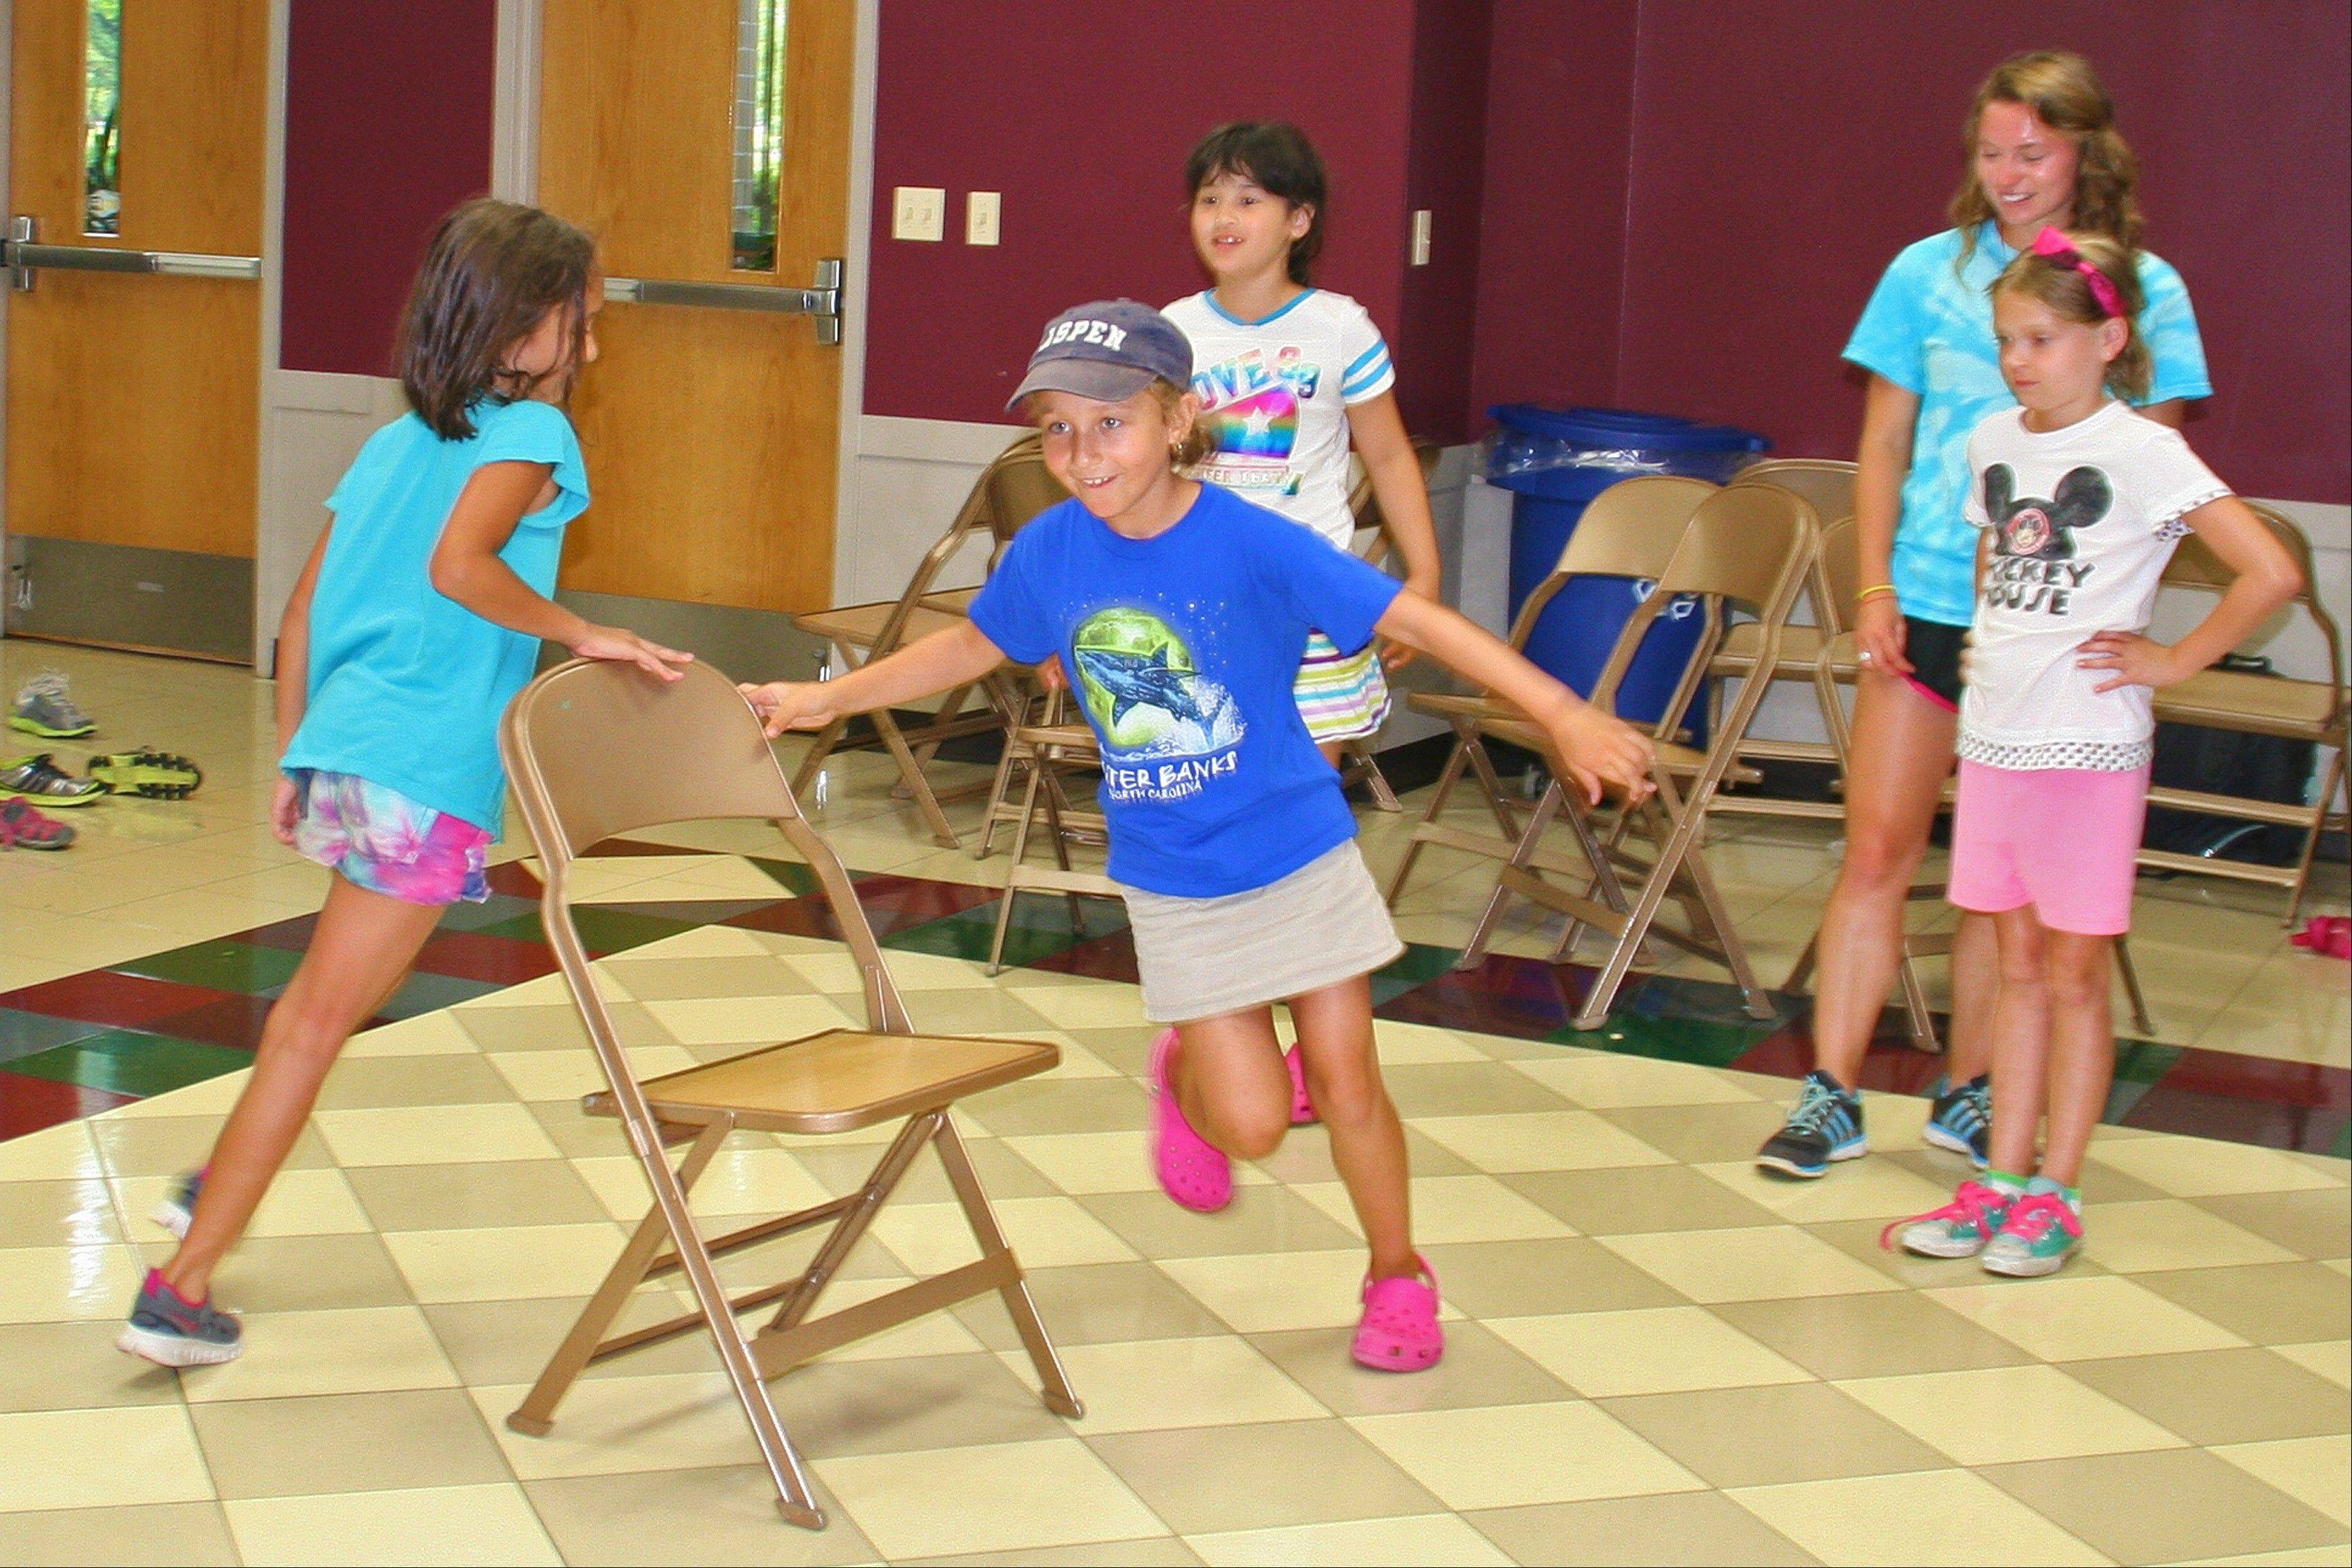 It is down to the final two in a battle of Musical Chairs during the 2013 All Camp Field Day at Prairie Lakes July 17.